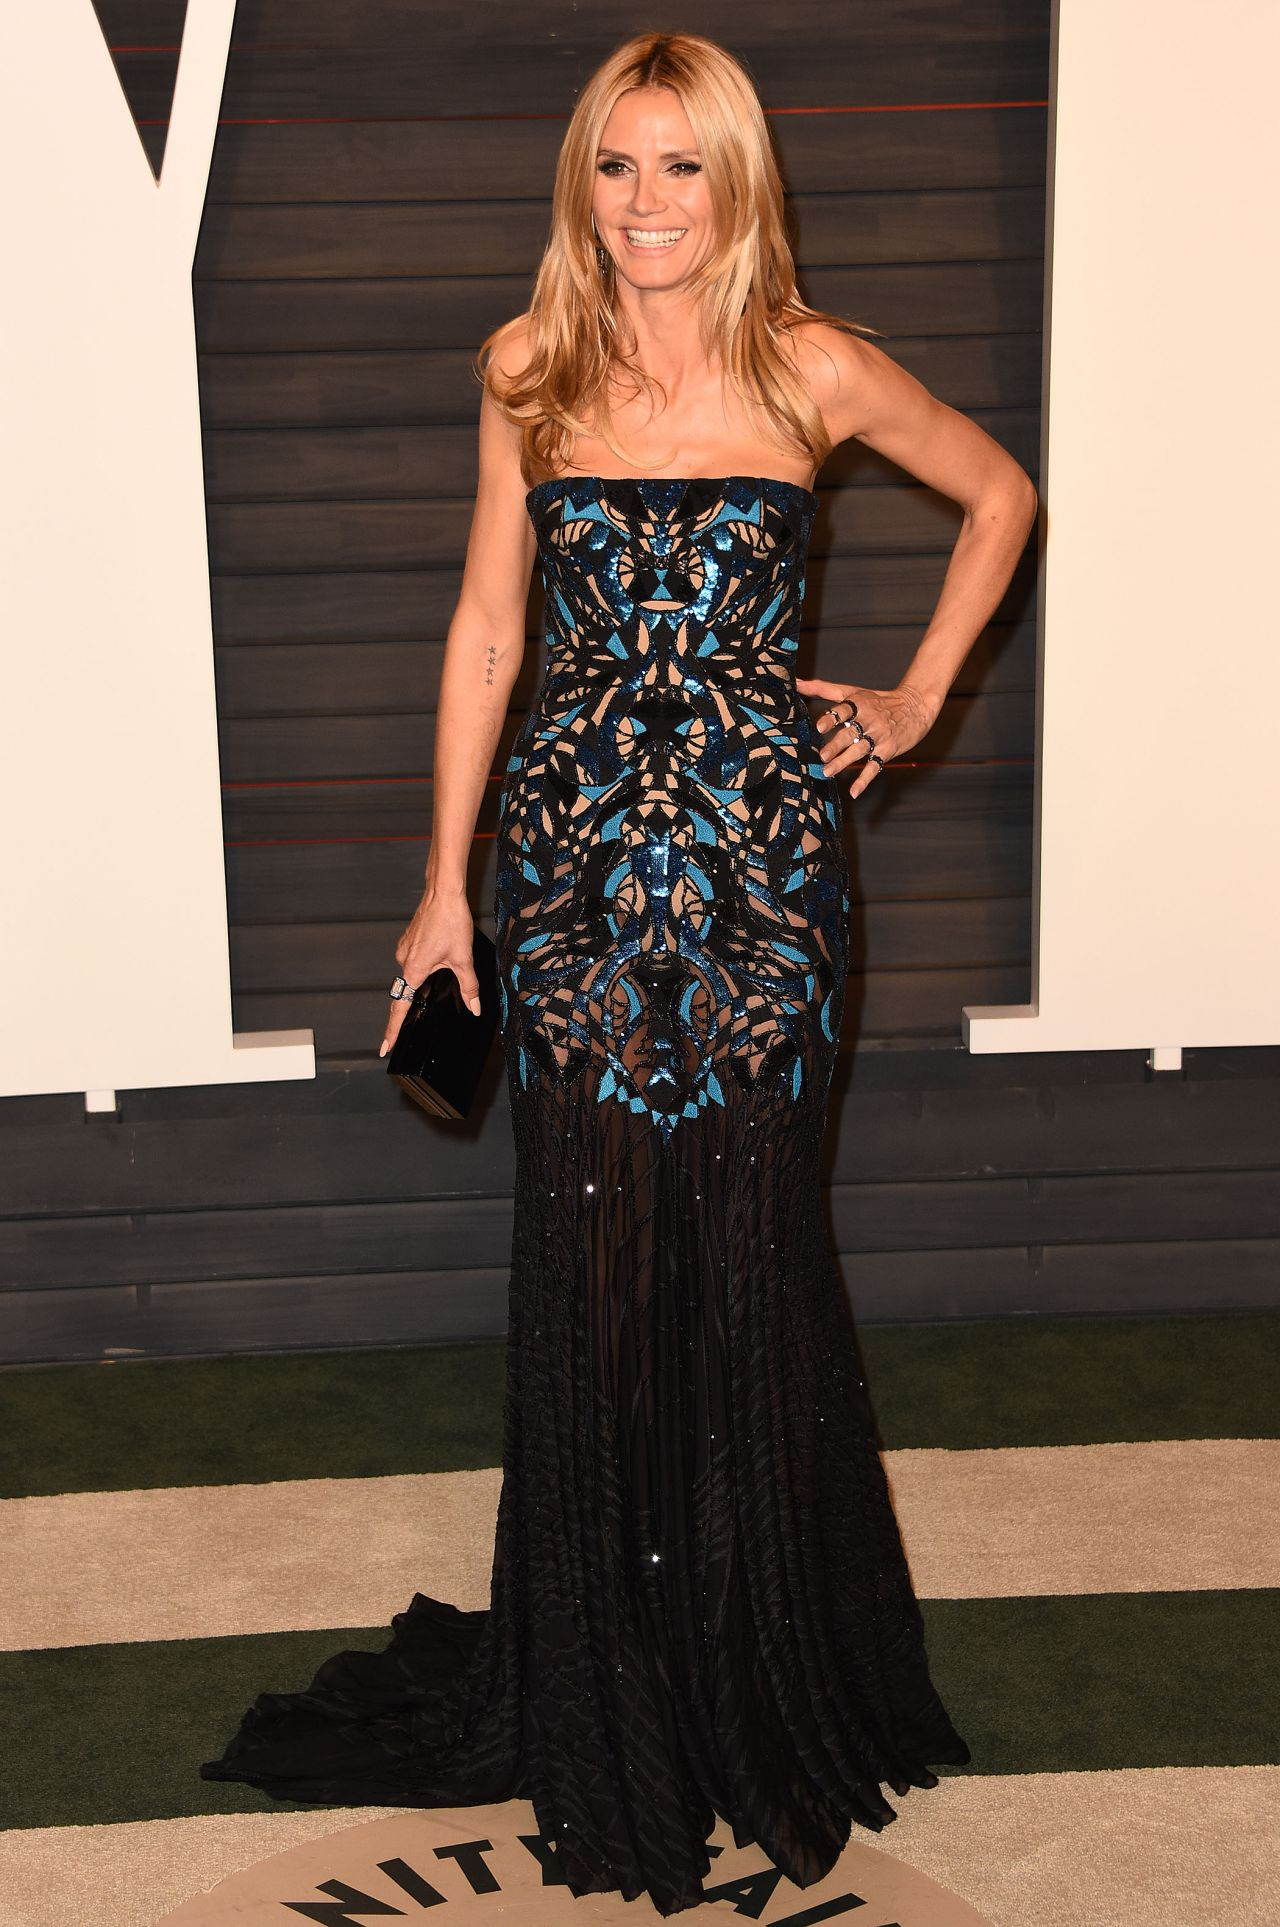 heidi-klum-2016-vanity-fair-oscar-party-in-beverly-hills-ca-6